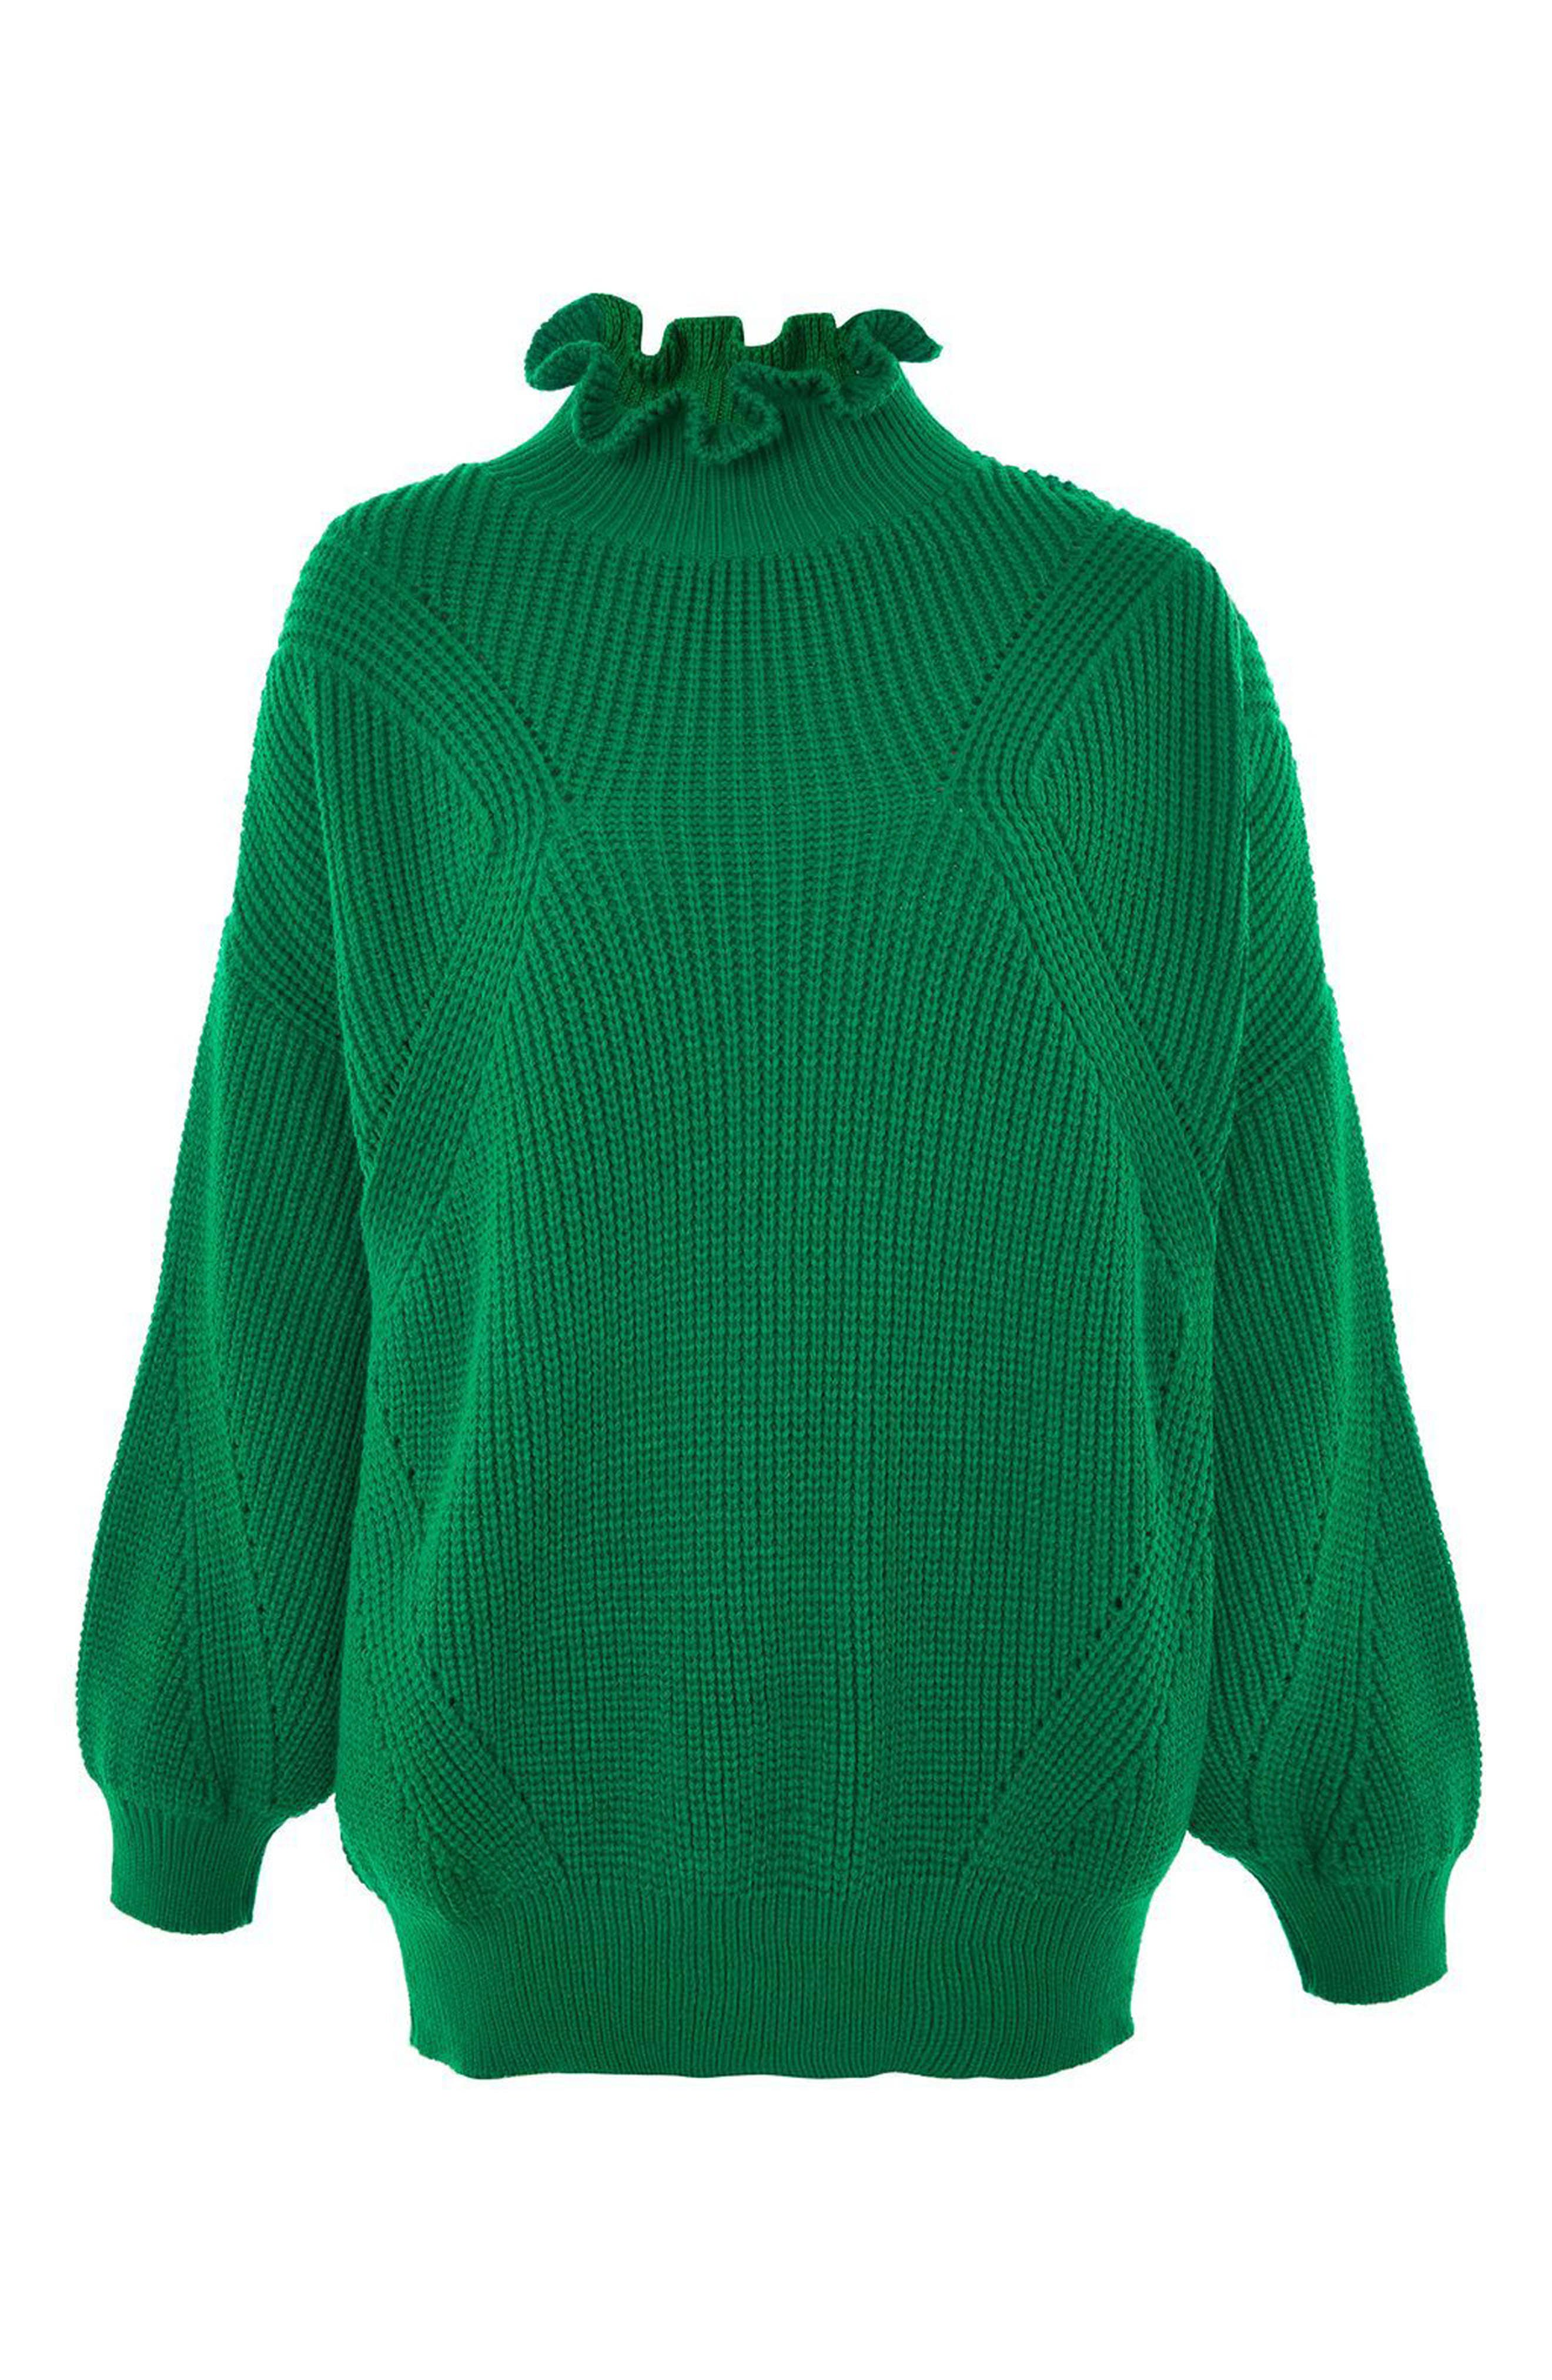 Frill Neck Sweater,                             Alternate thumbnail 5, color,                             300